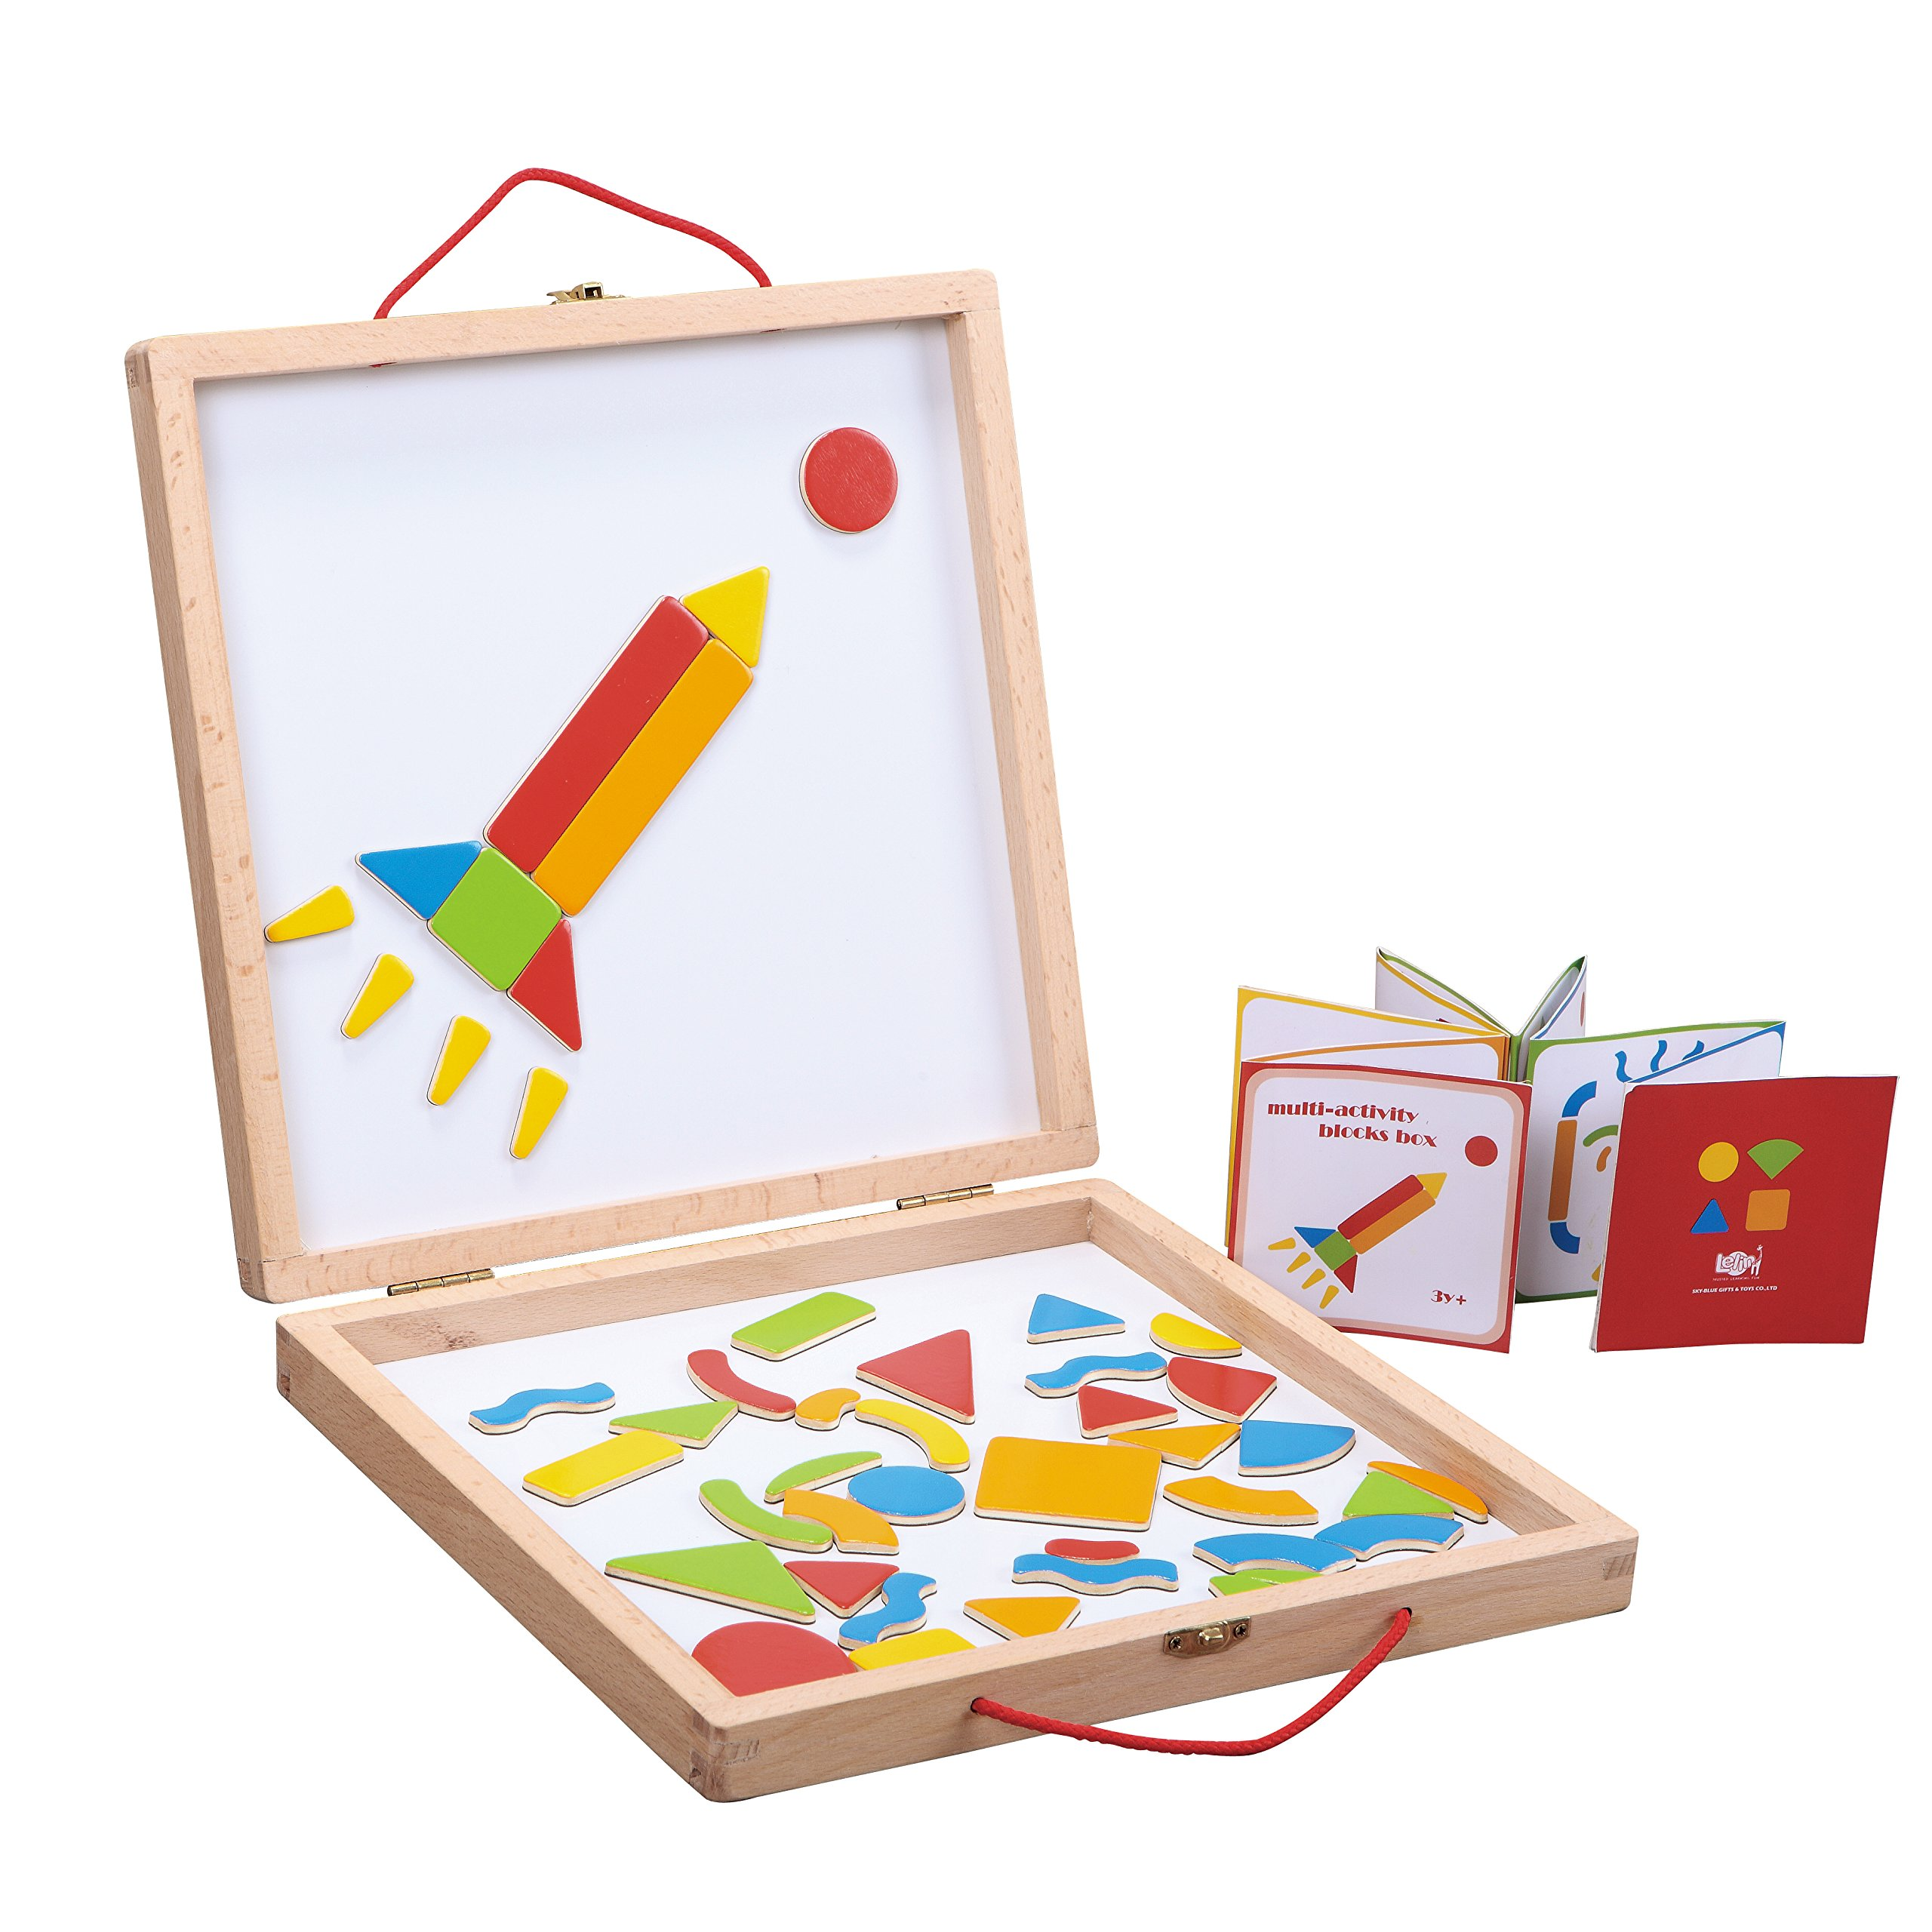 Fat Brain Toys Magnetic Creation Station Arts & Crafts for Ages 3 to 4 by Fat Brain Toys